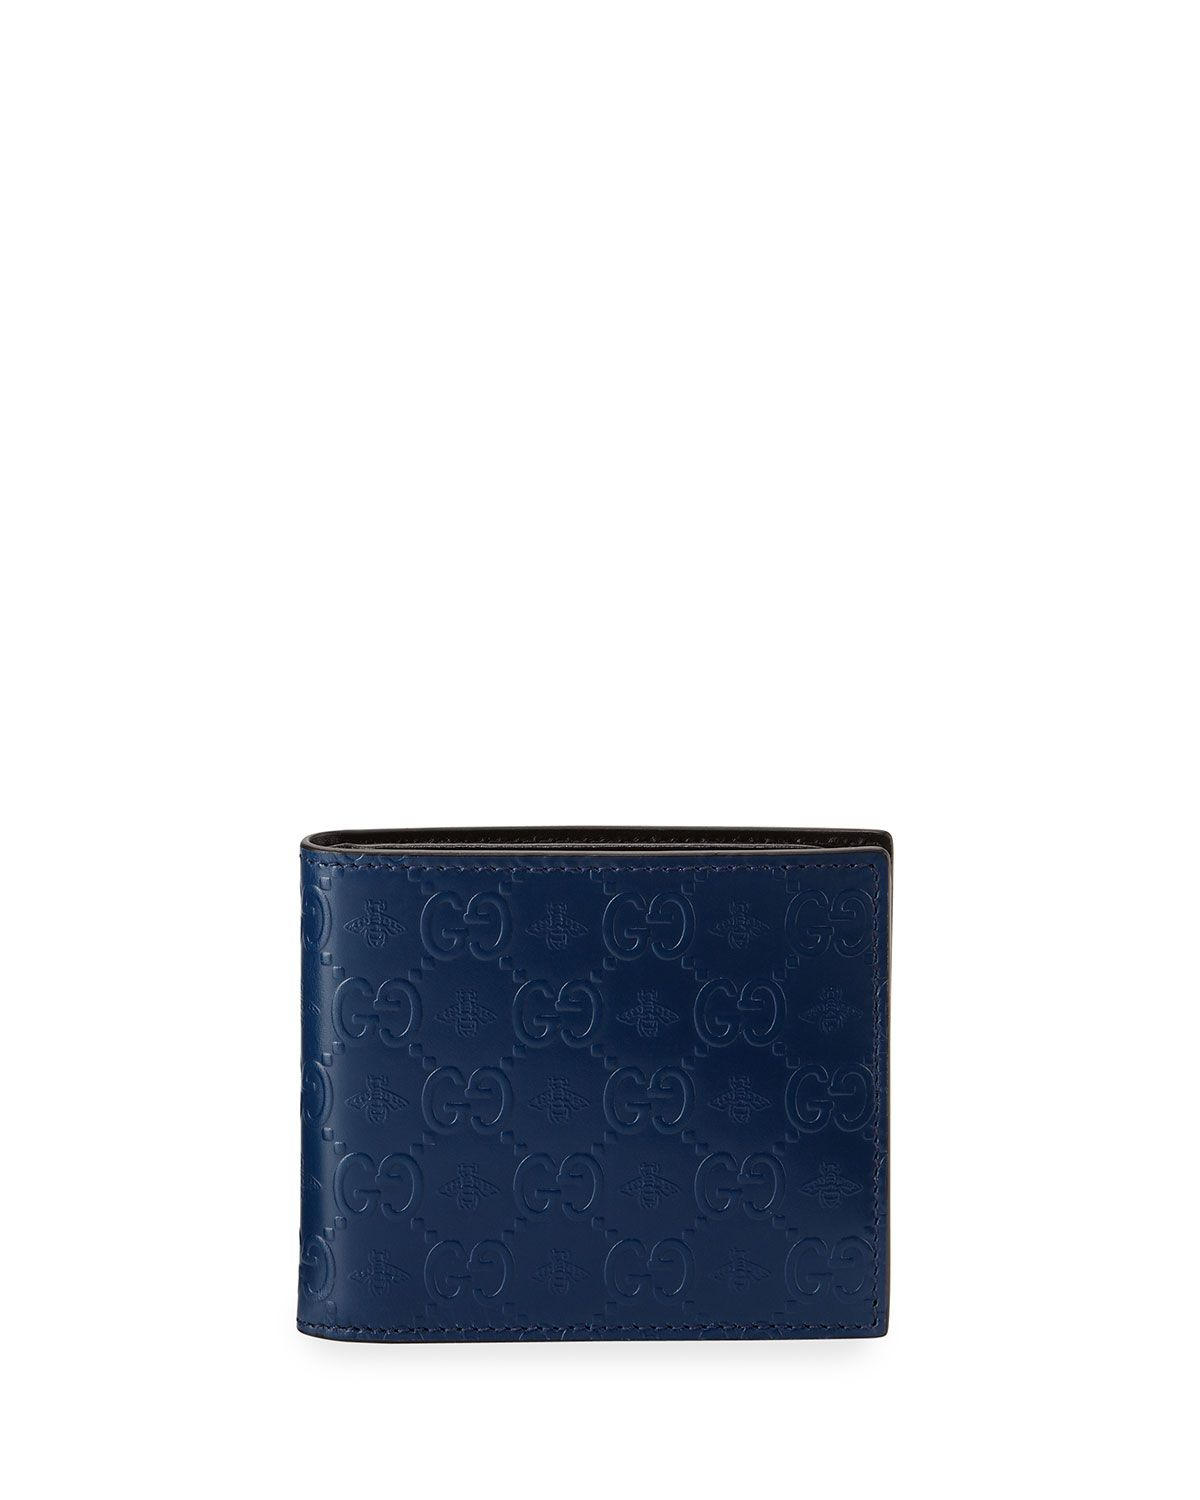 3e5ae1a044b Gucci Alveare GG Leather Bi-Fold Wallet